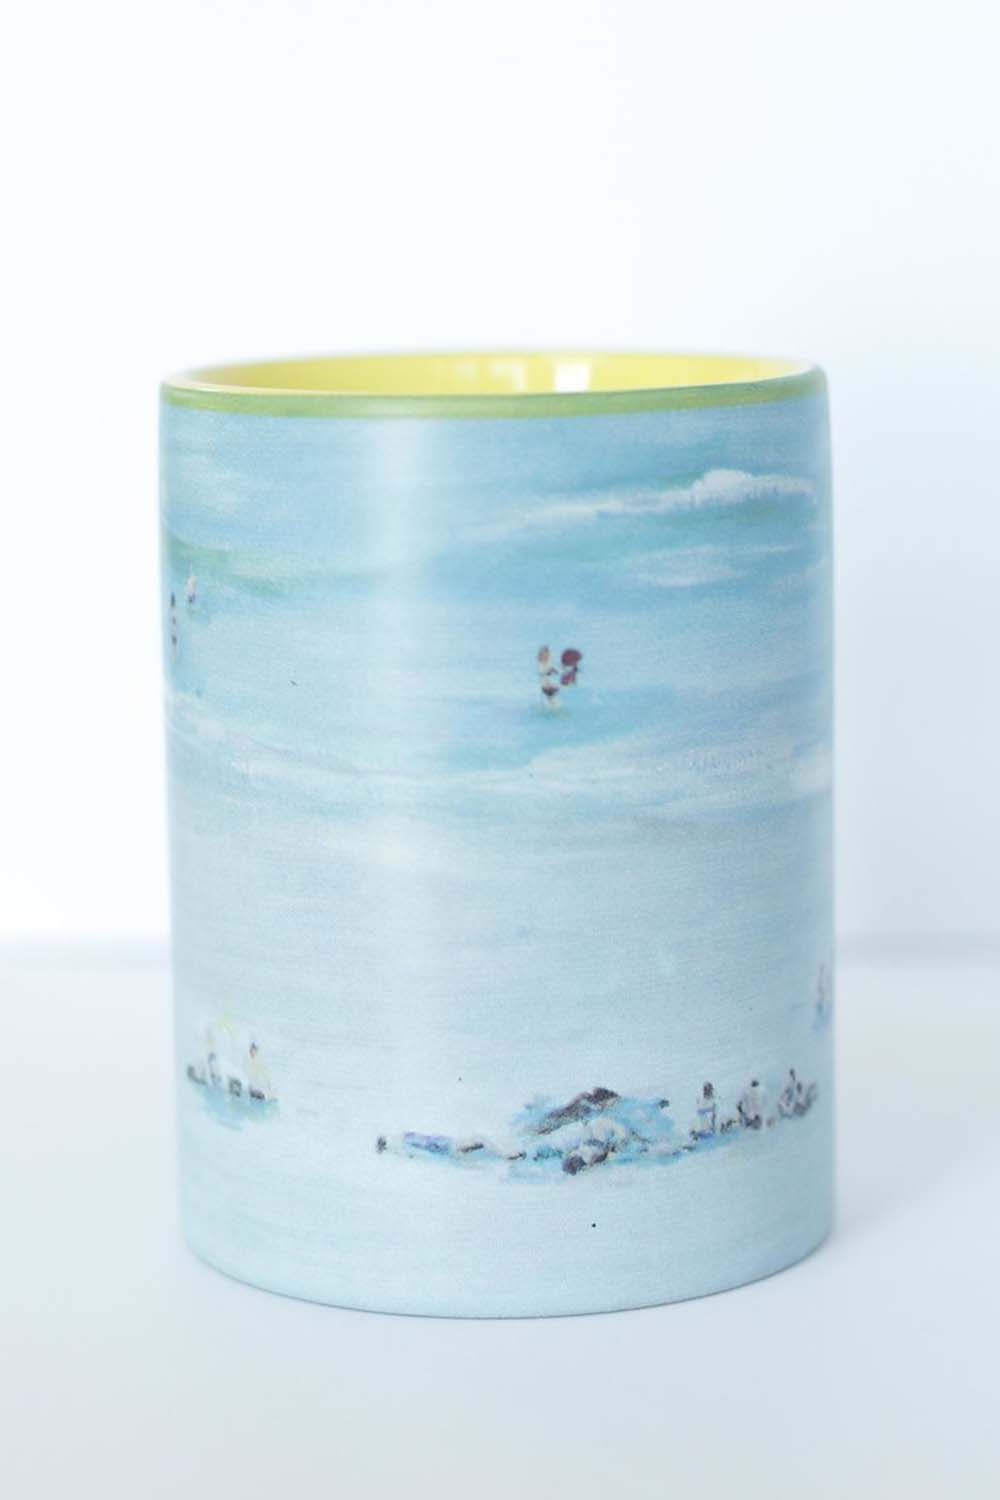 Kim Hovell + Annapolis Candle - Salty Shore